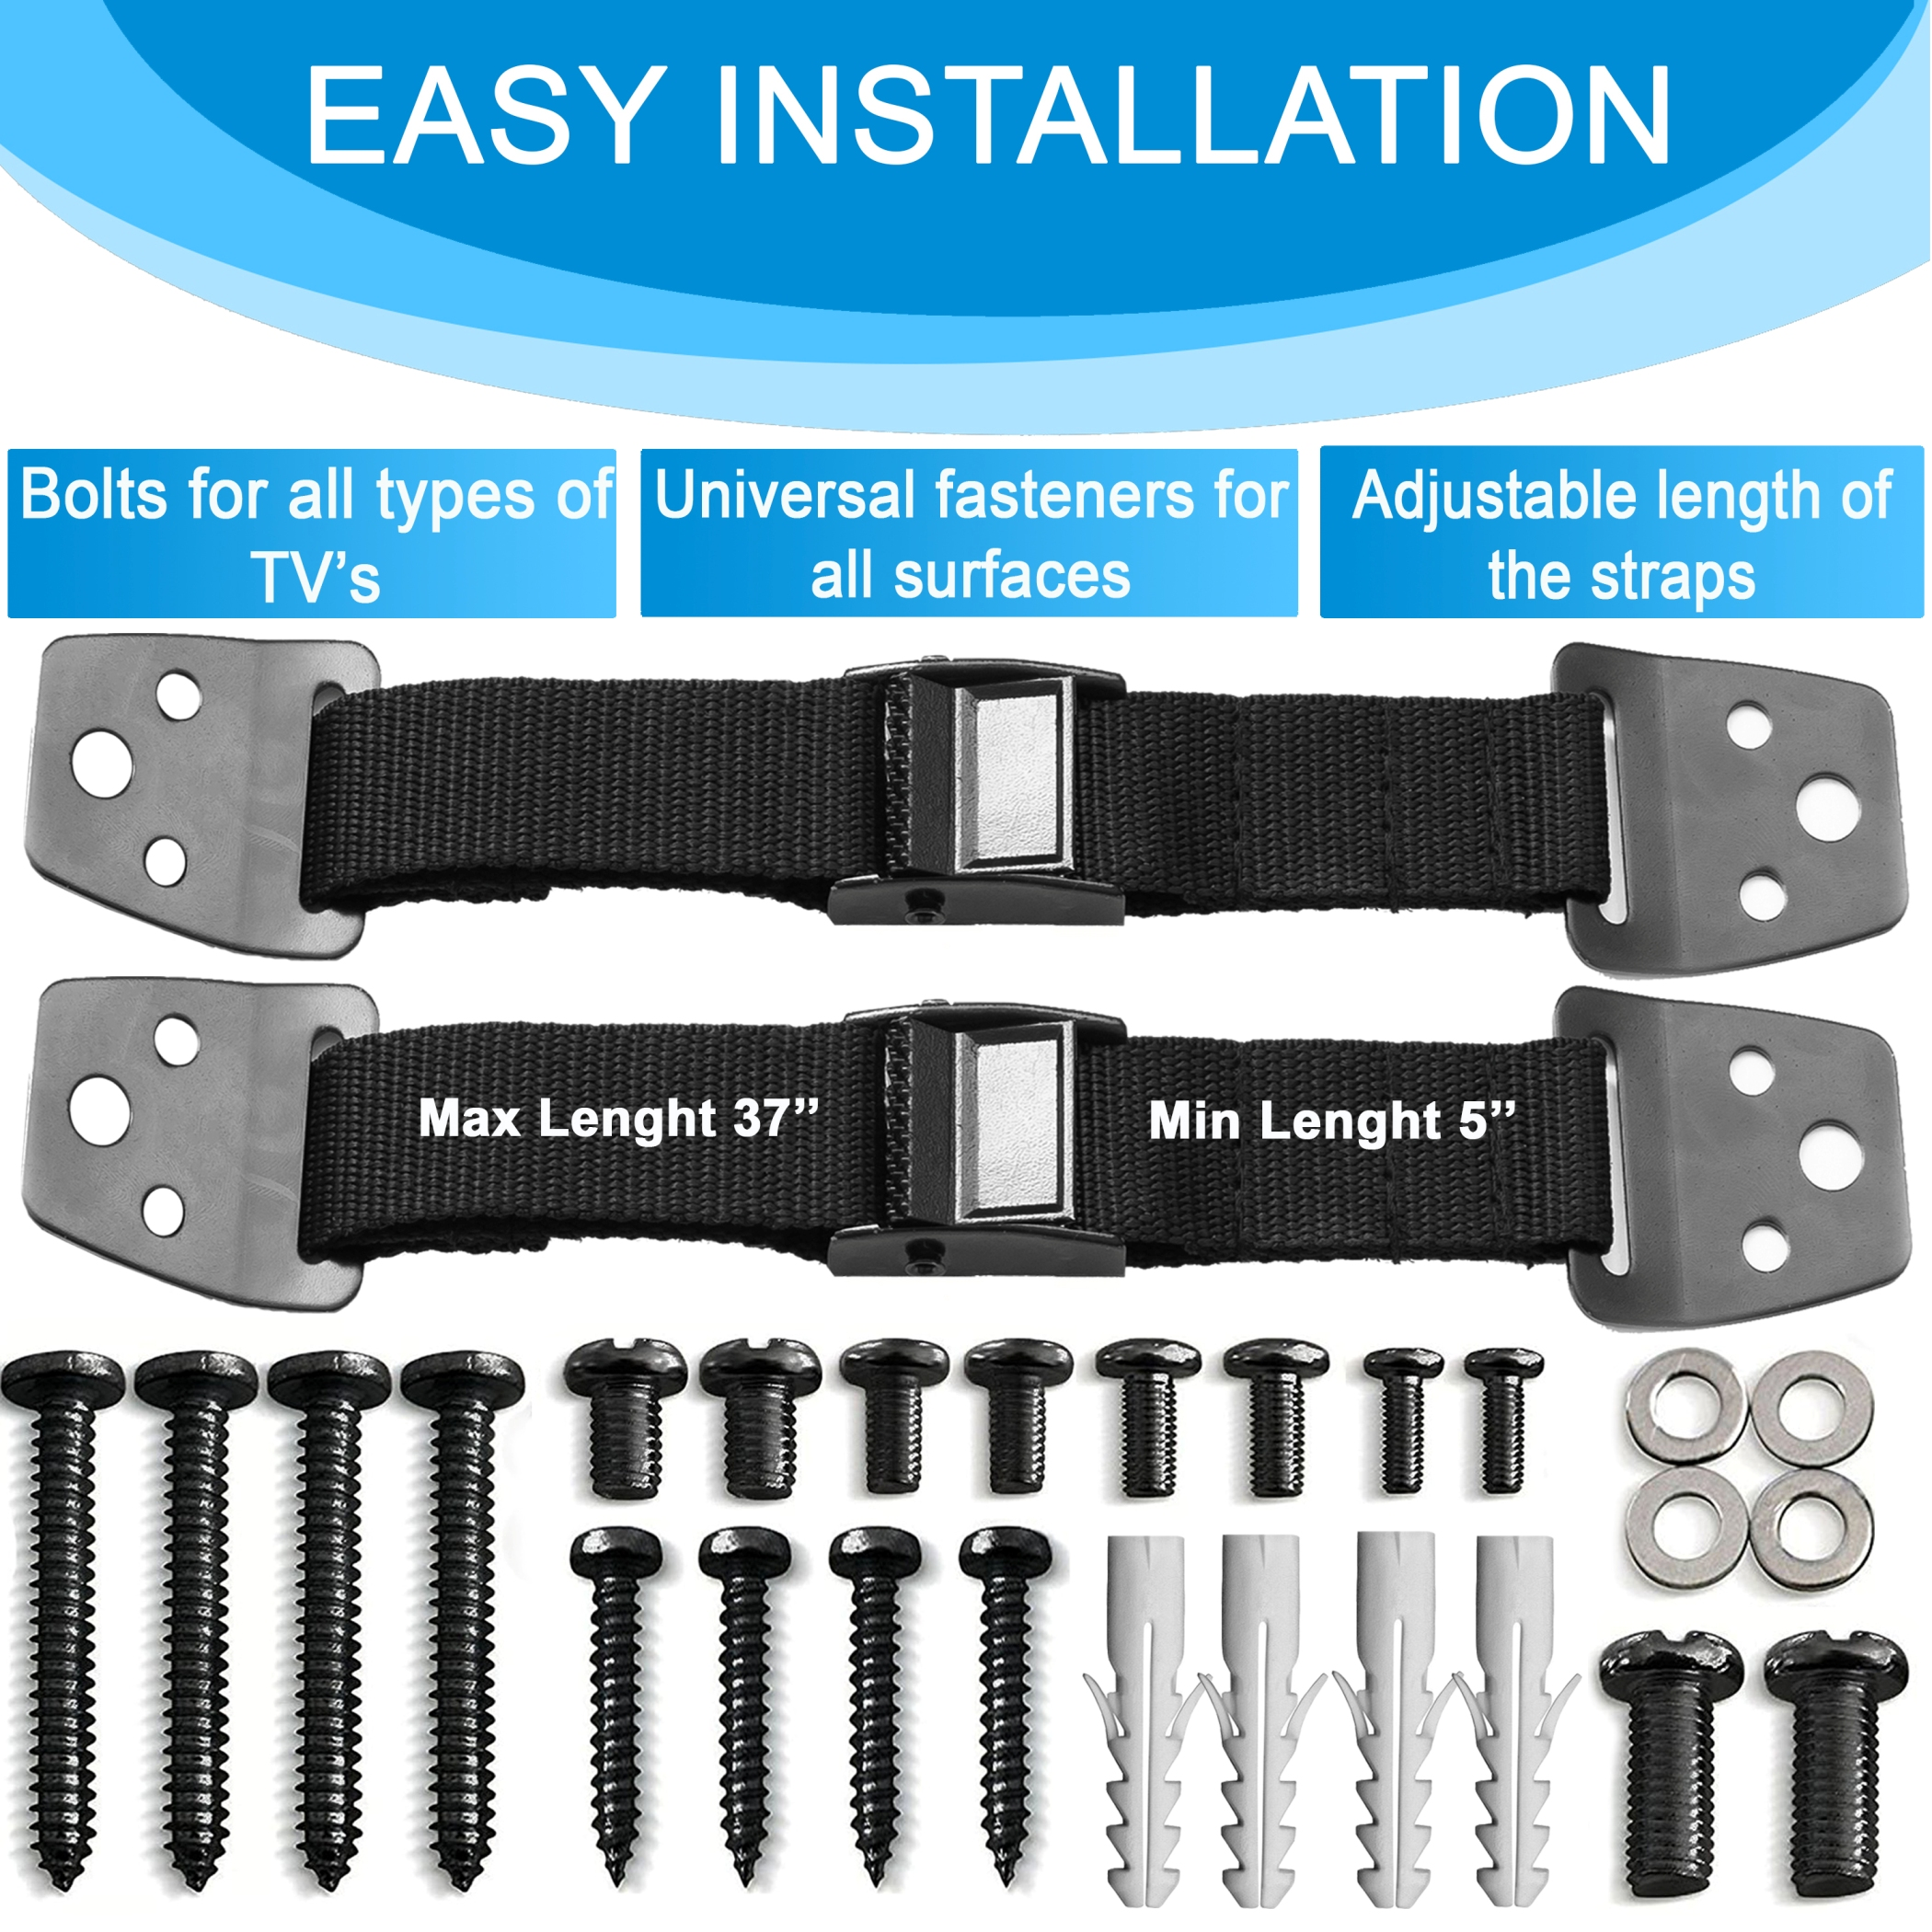 METAL Anti Tip Furniture Kit - TV Straps Safety (4 PACK+ 1 LOCK) Earthquake Straps - Furniture Anchors For Baby Proofing - Wall Straps For Flat Screen -